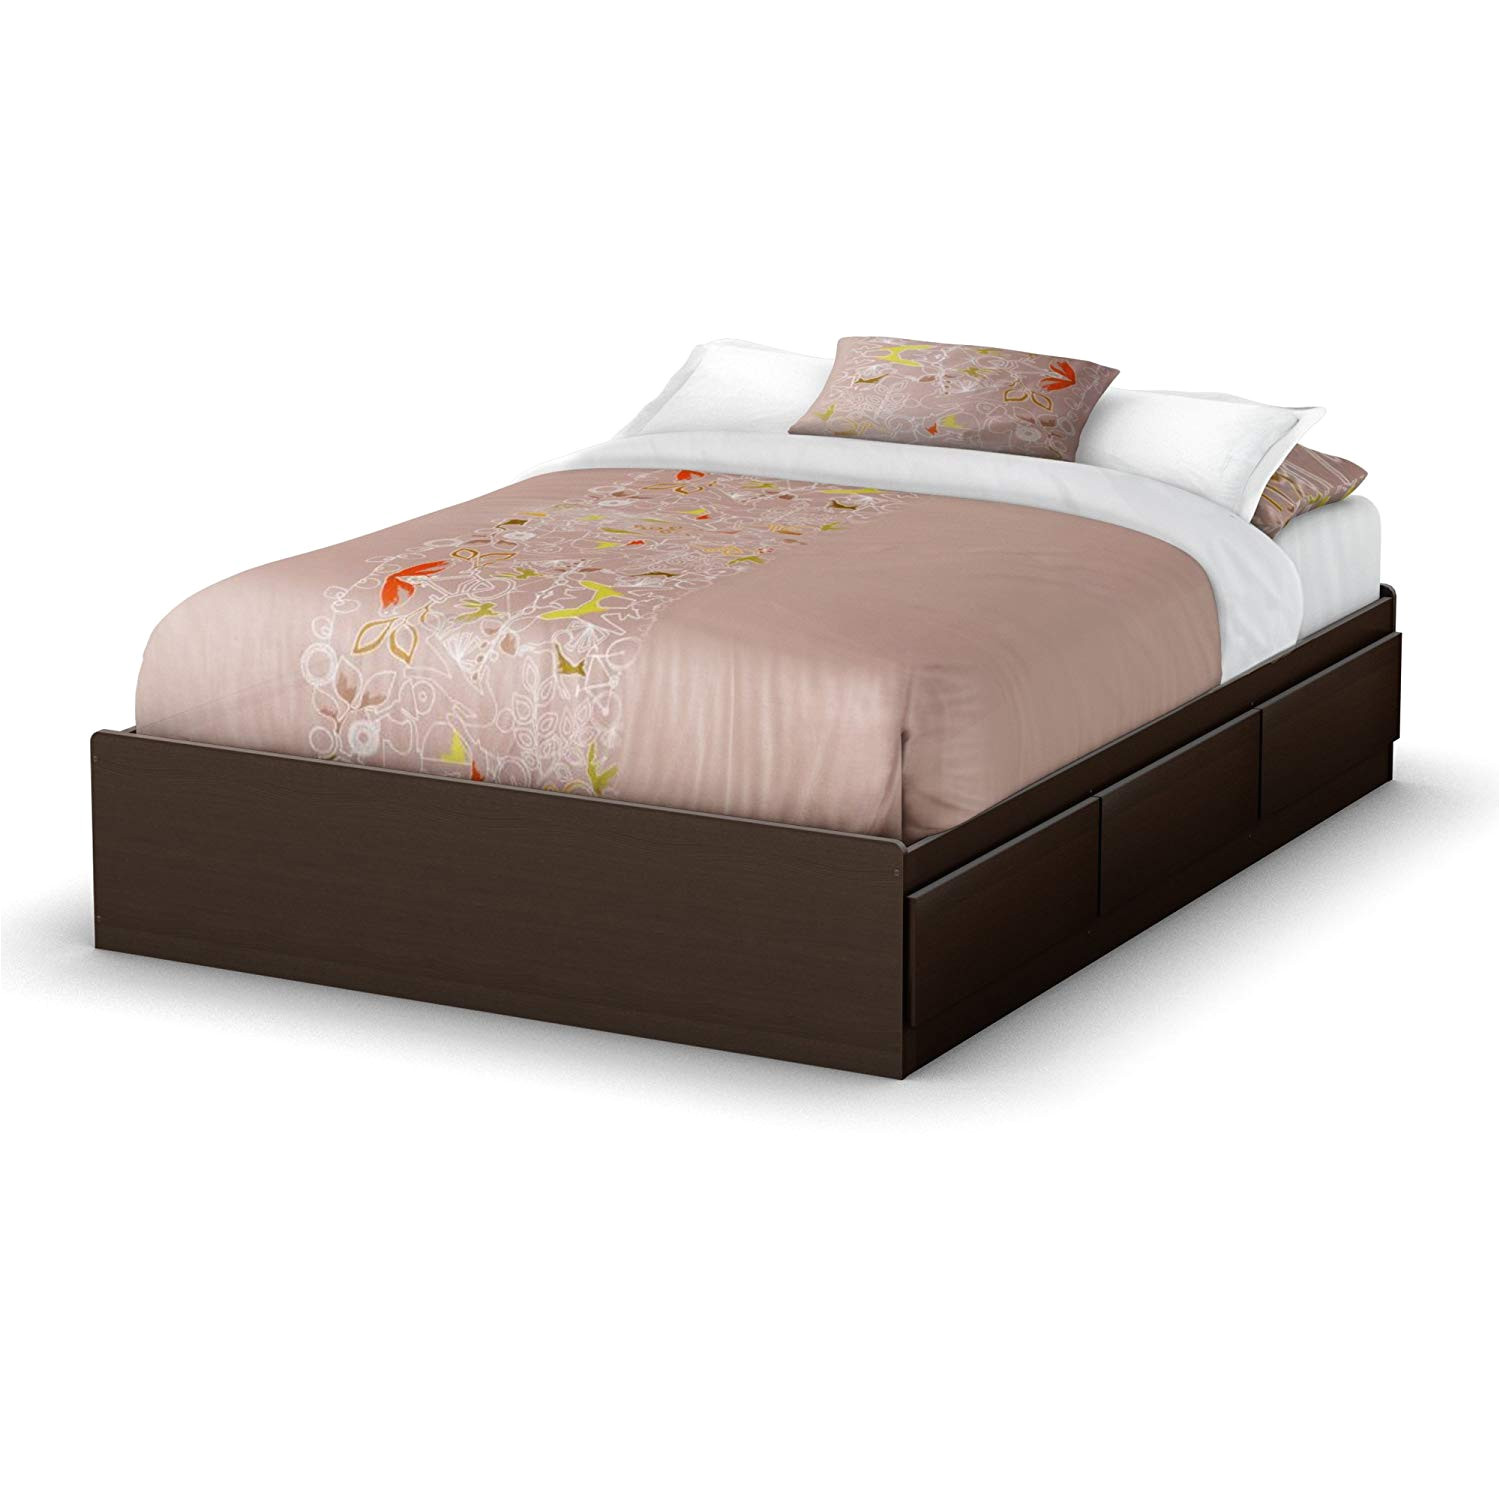 amazon com south shore 3159211 storage collection 54 inch full mates bed chocolate kitchen dining